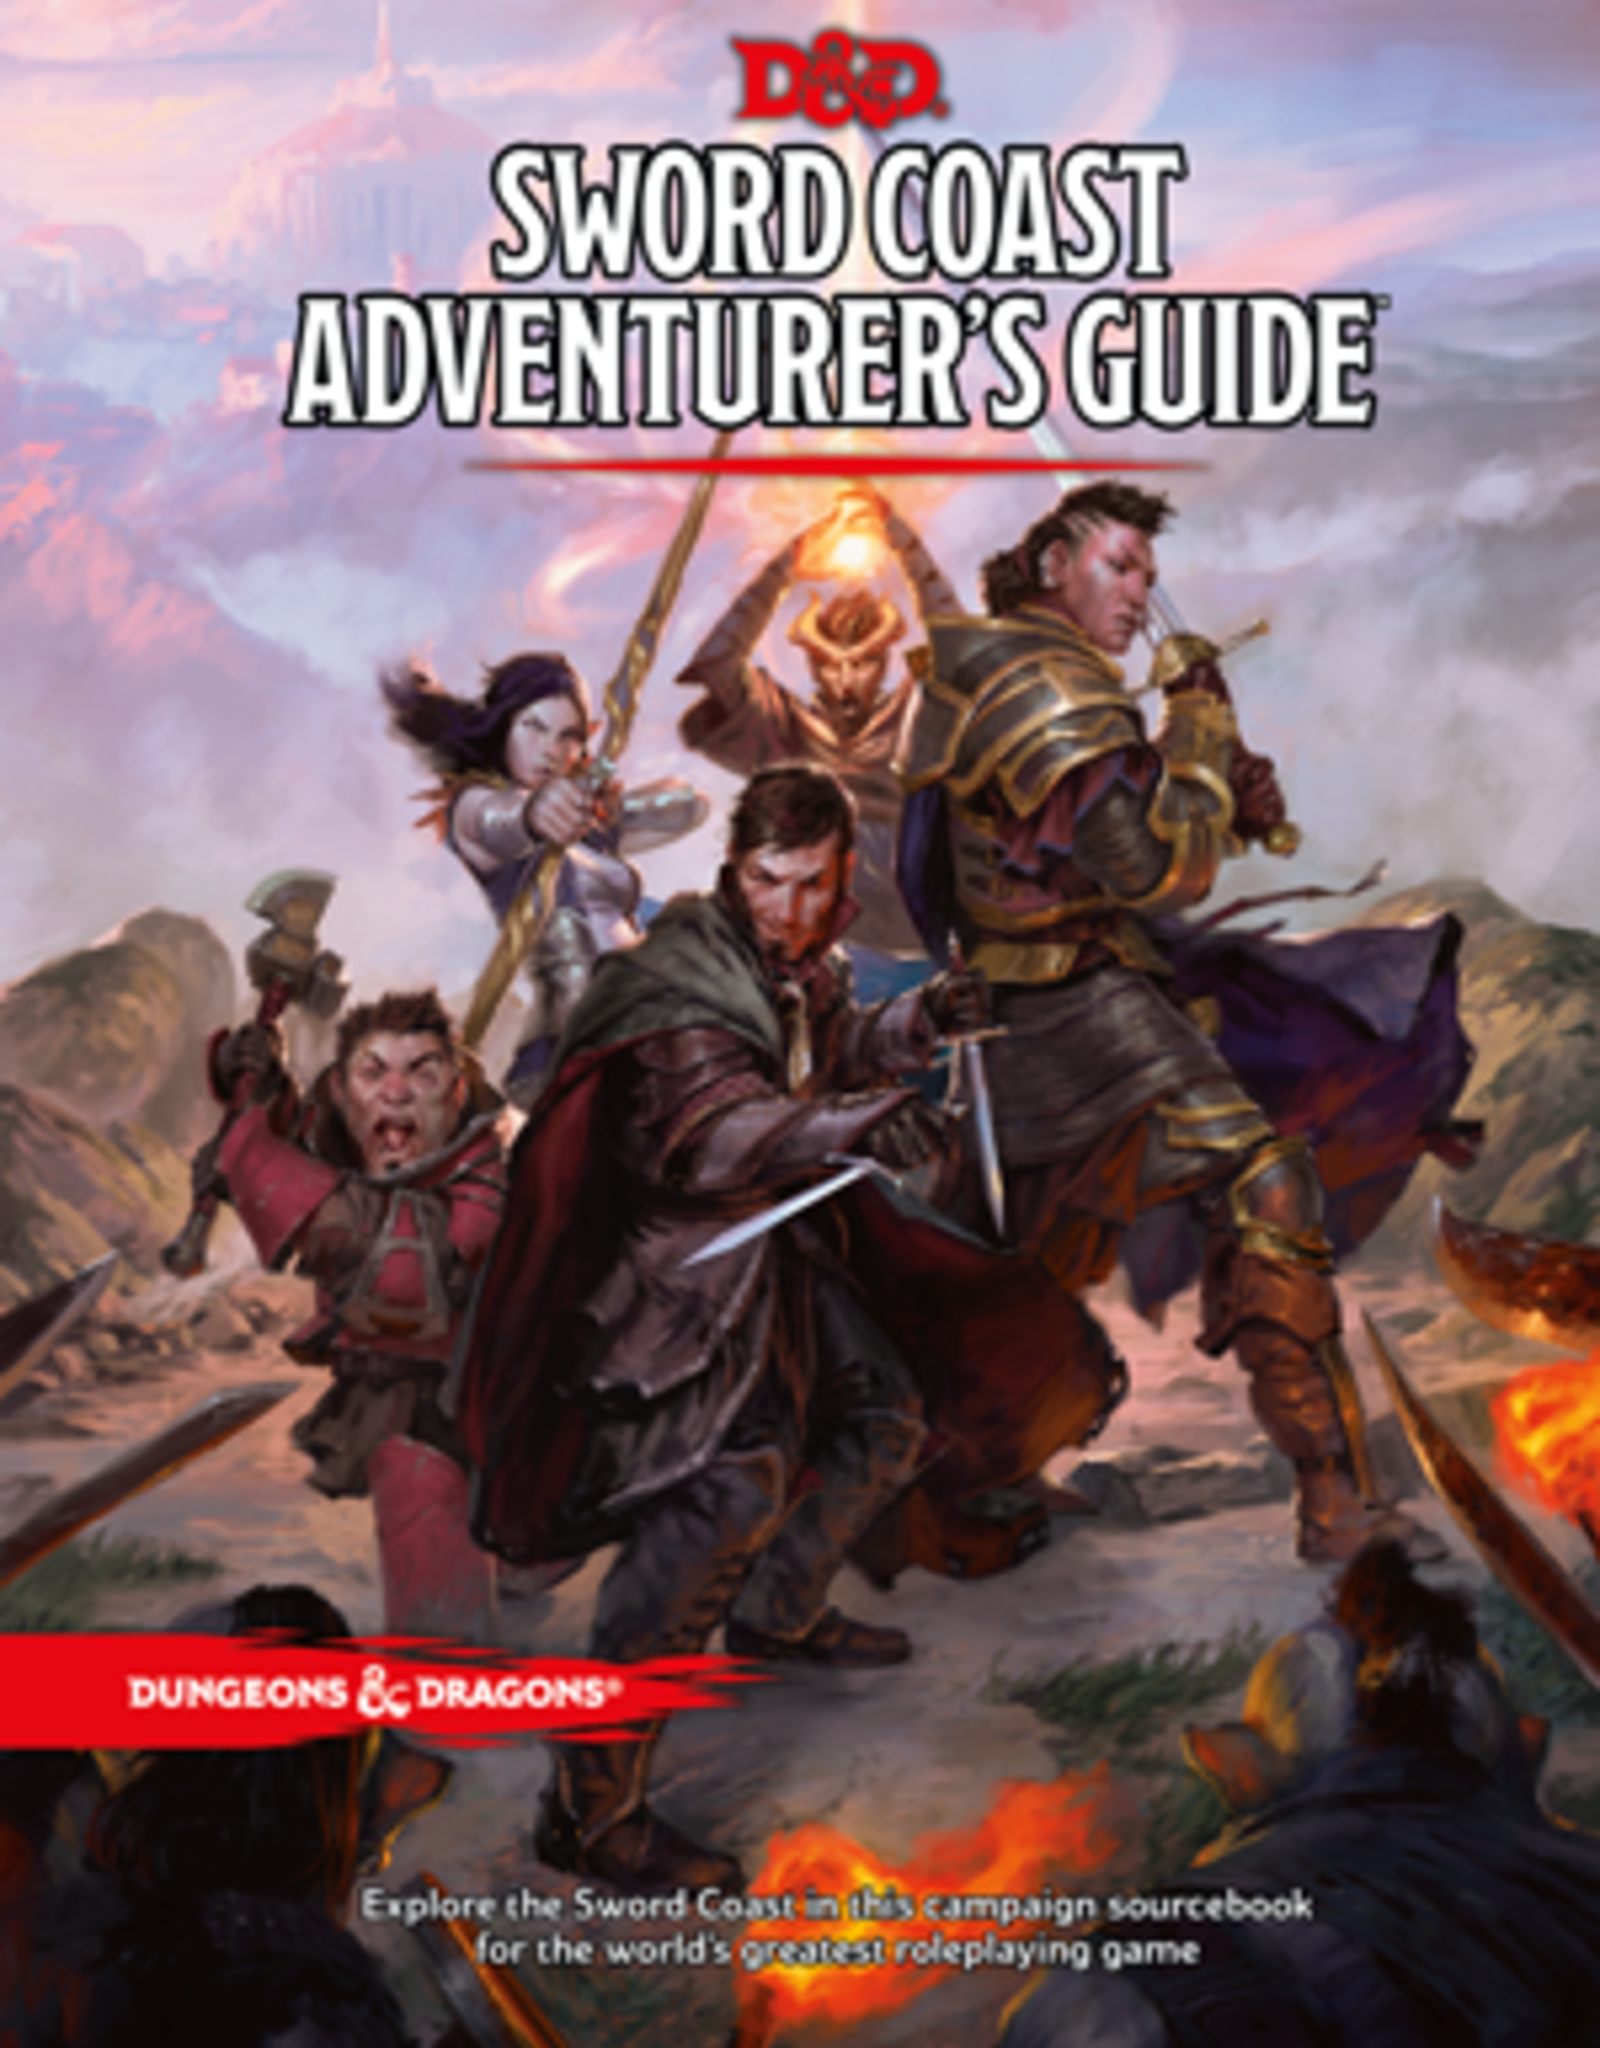 Wizards of the Coast Dungeons & Dragons Sword Coast Adventurer's Guide